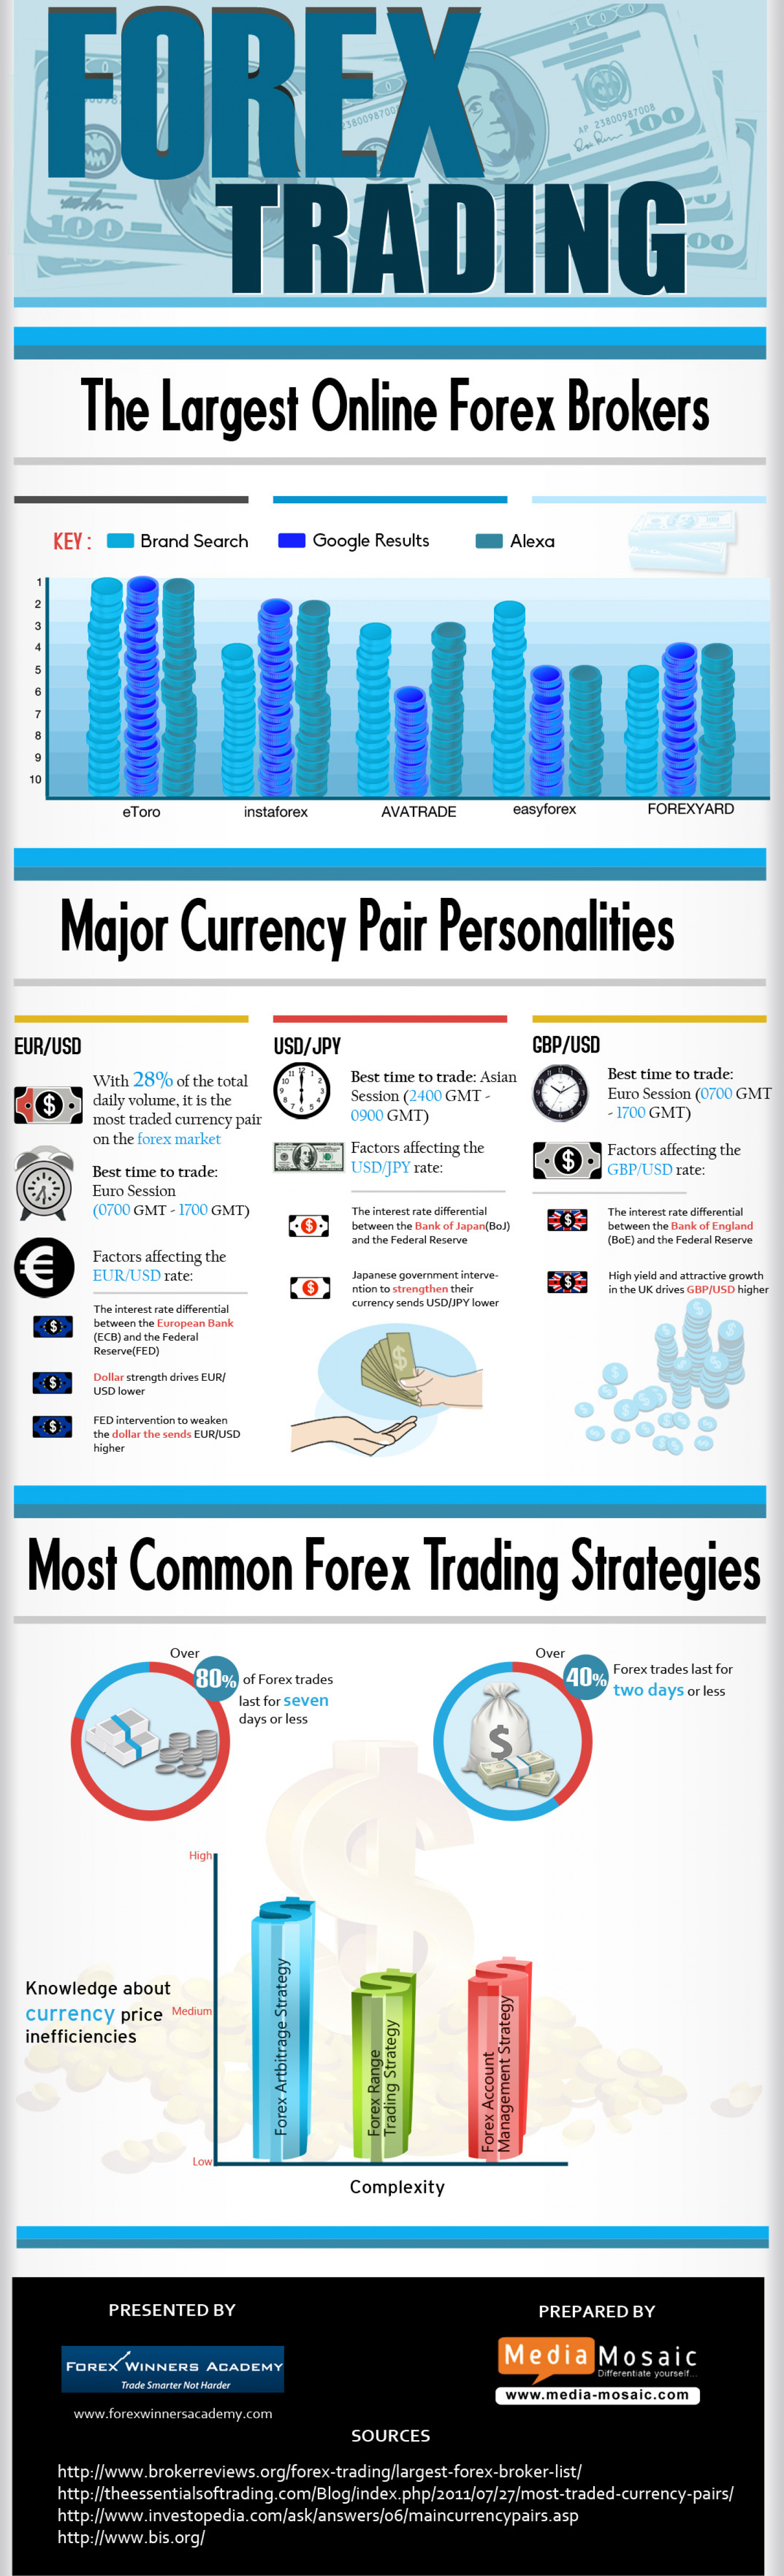 Forex Trading – The Largest Online Forex Brokers Infographic